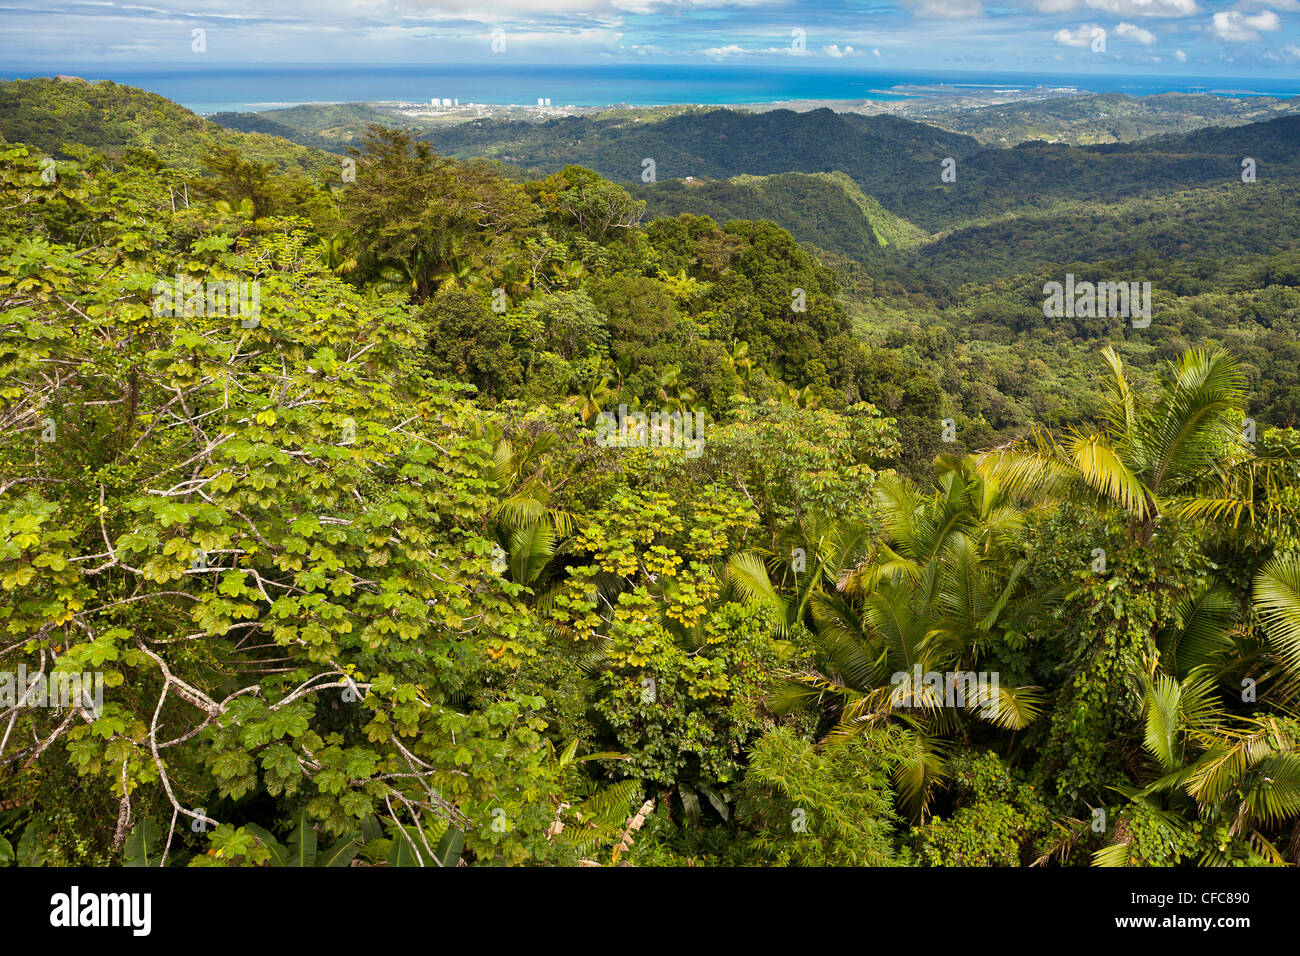 Forêt nationale de El Yunque, PUERTO RICO - jungle Rain forest canopy et paysage côte près de Luquillo Photo Stock